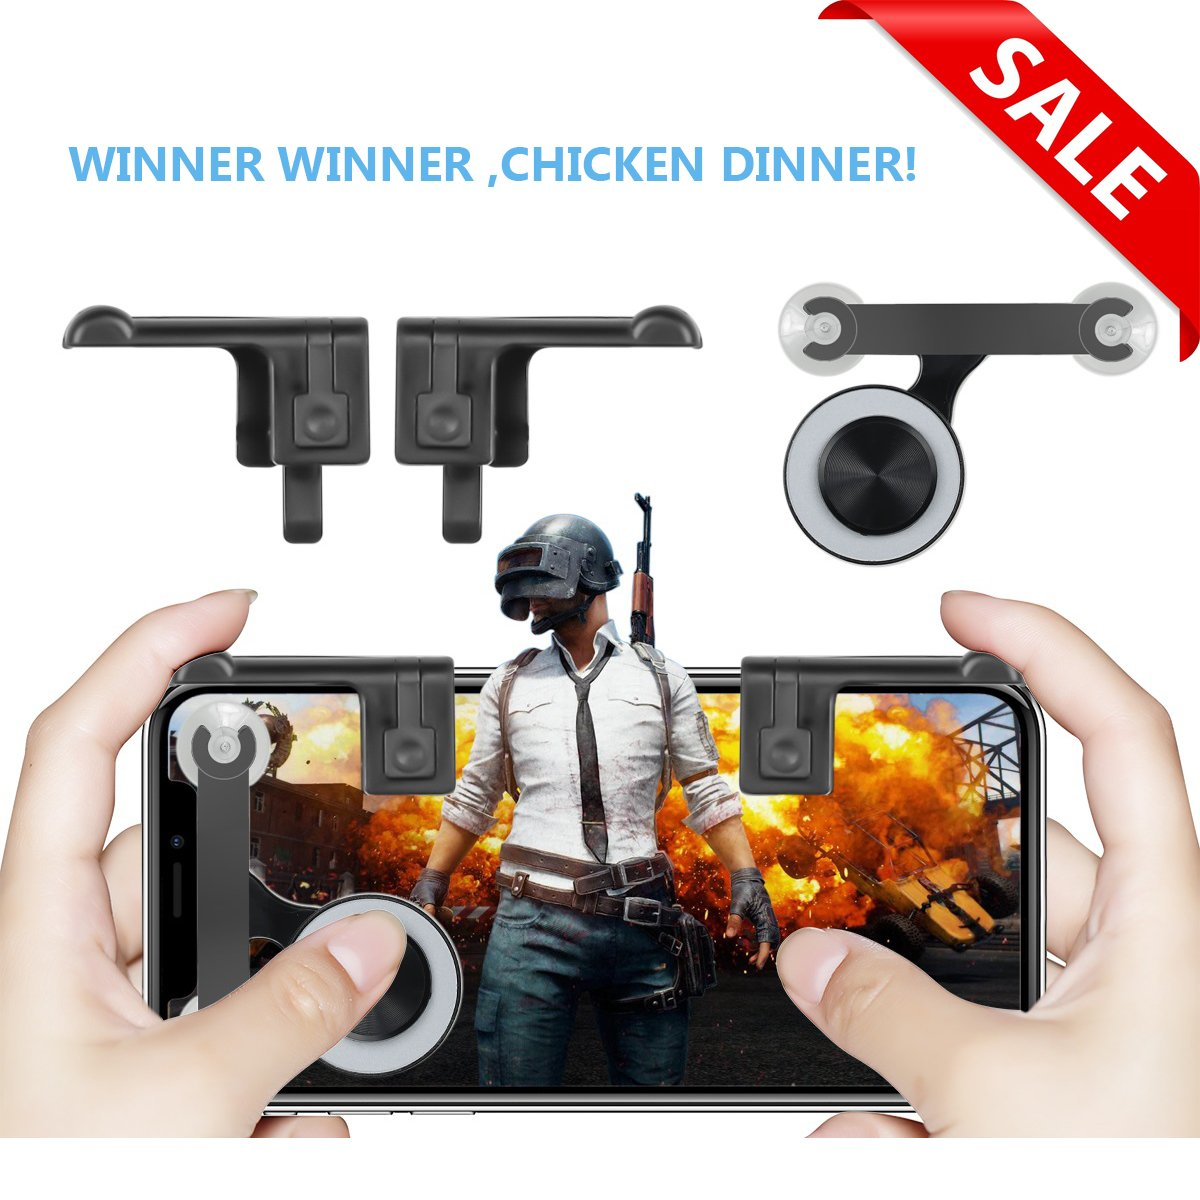 Mobile Joystick, Rocker and L1R1 Fire Botton Aim Key Shooter Controller, Sensitive Touch Screen Gamepad for Rules of Survival, Fortnite, Survivor Royale, Critical Ops